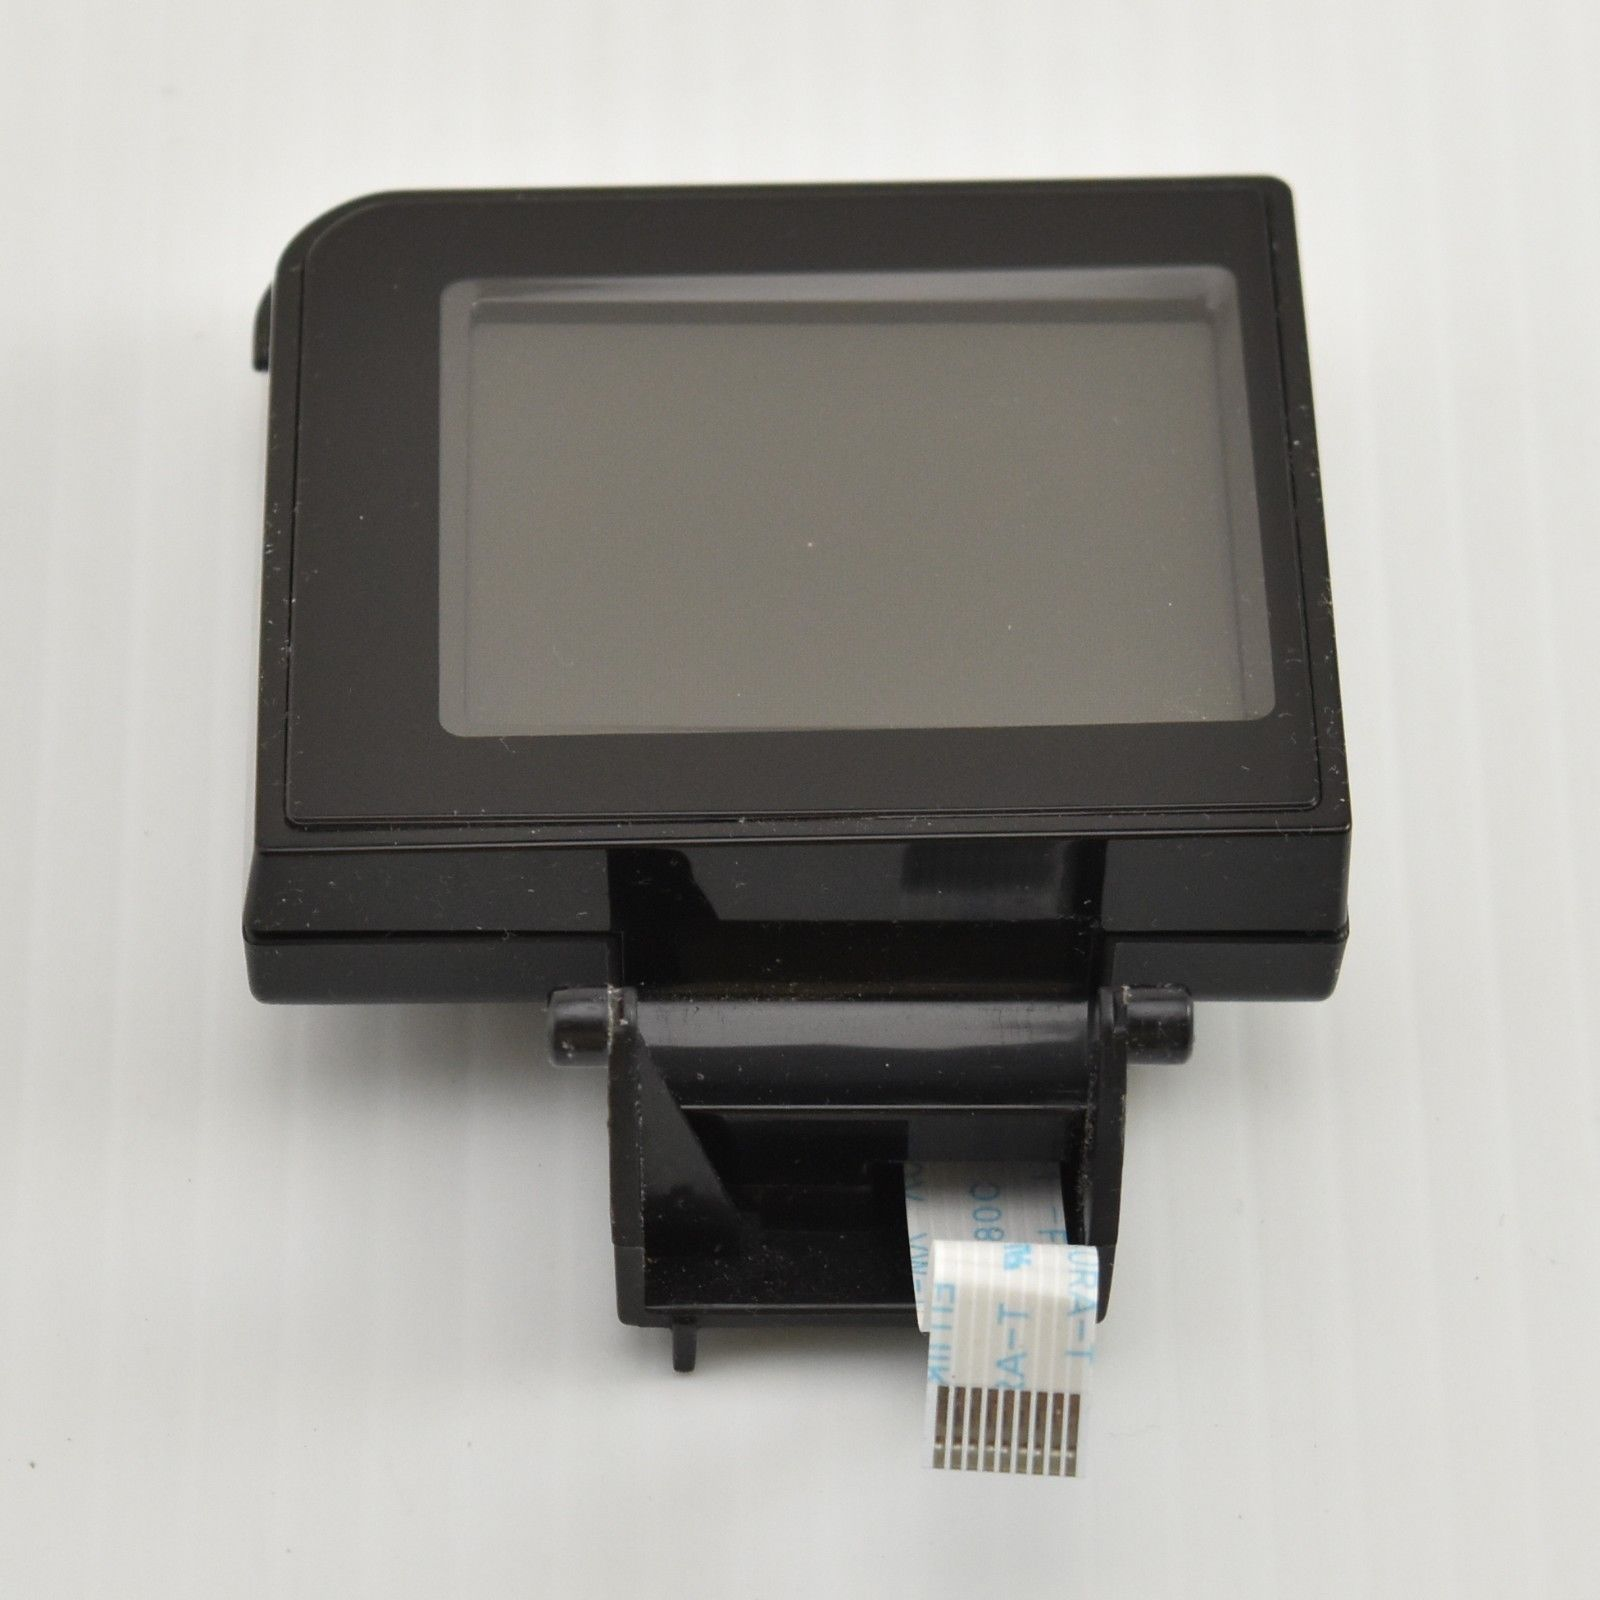 Epson Stylus Printer NX510 LCD Display and 42 similar items